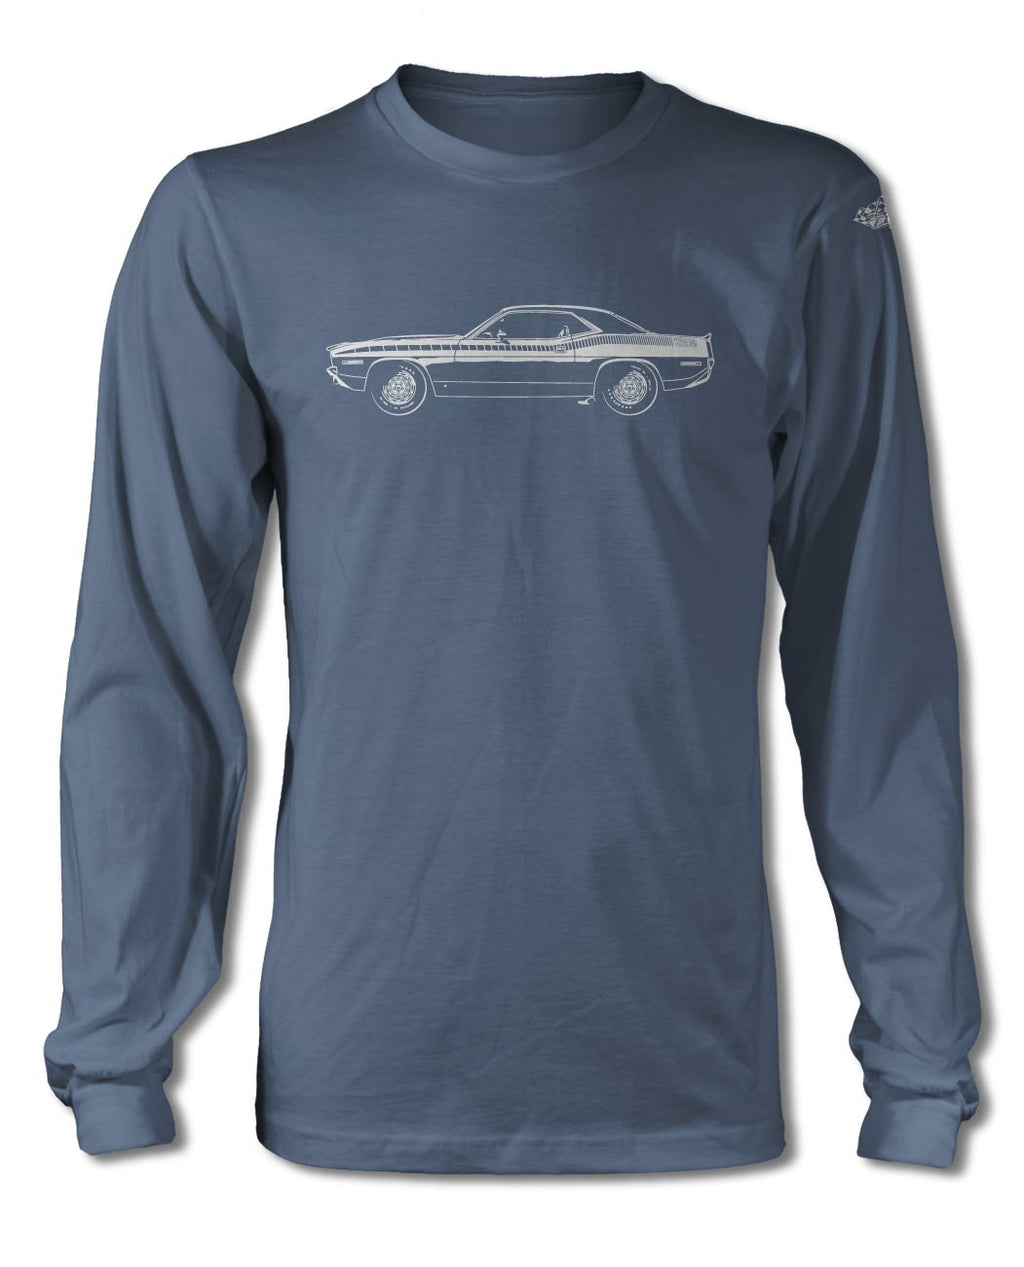 1970 Plymouth Barracuda 'Cuda 340 AAR Coupe T-Shirt - Long Sleeve - Side View